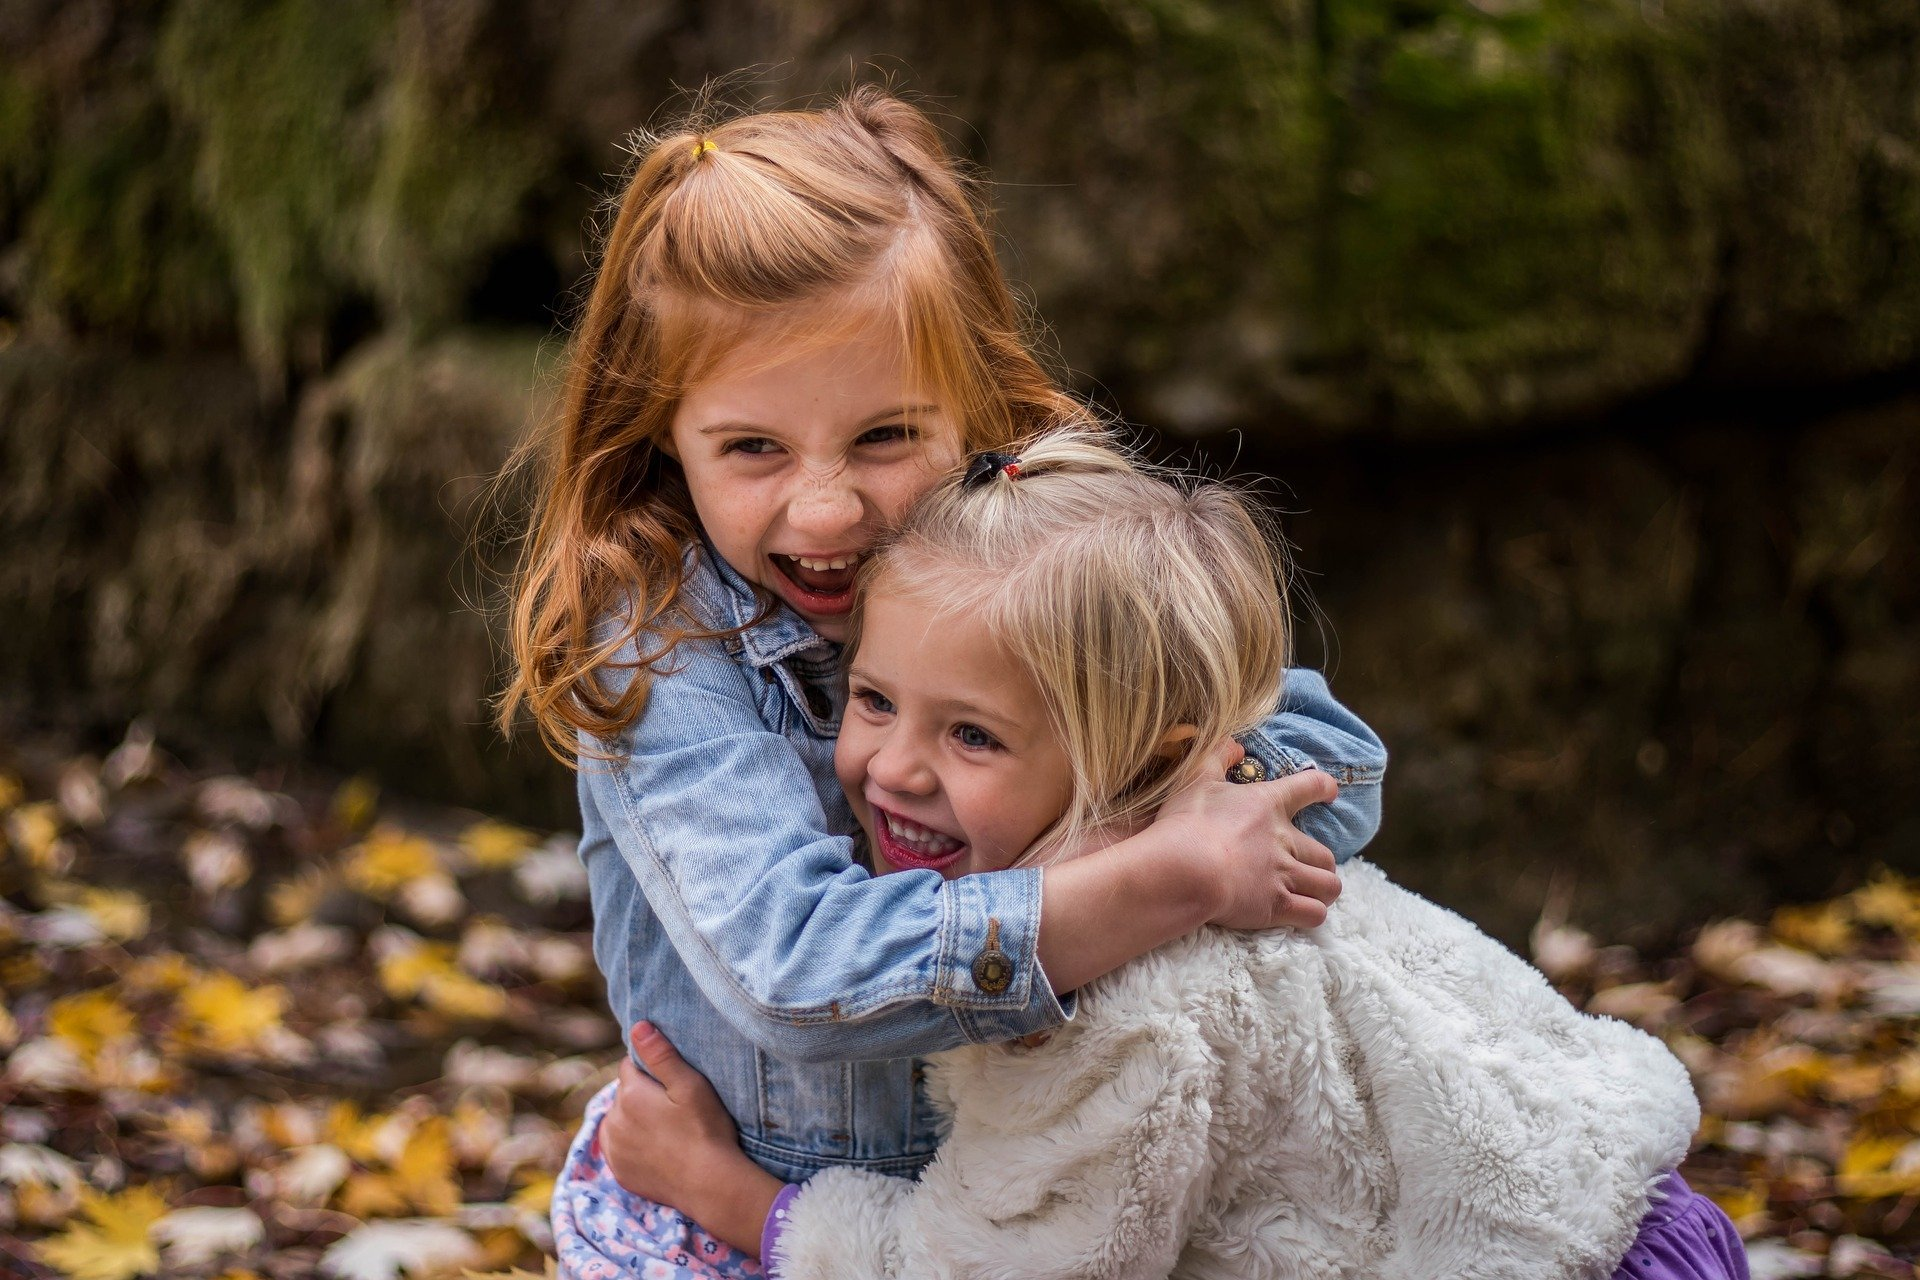 Maintaining friendships is key to your child's resilience.